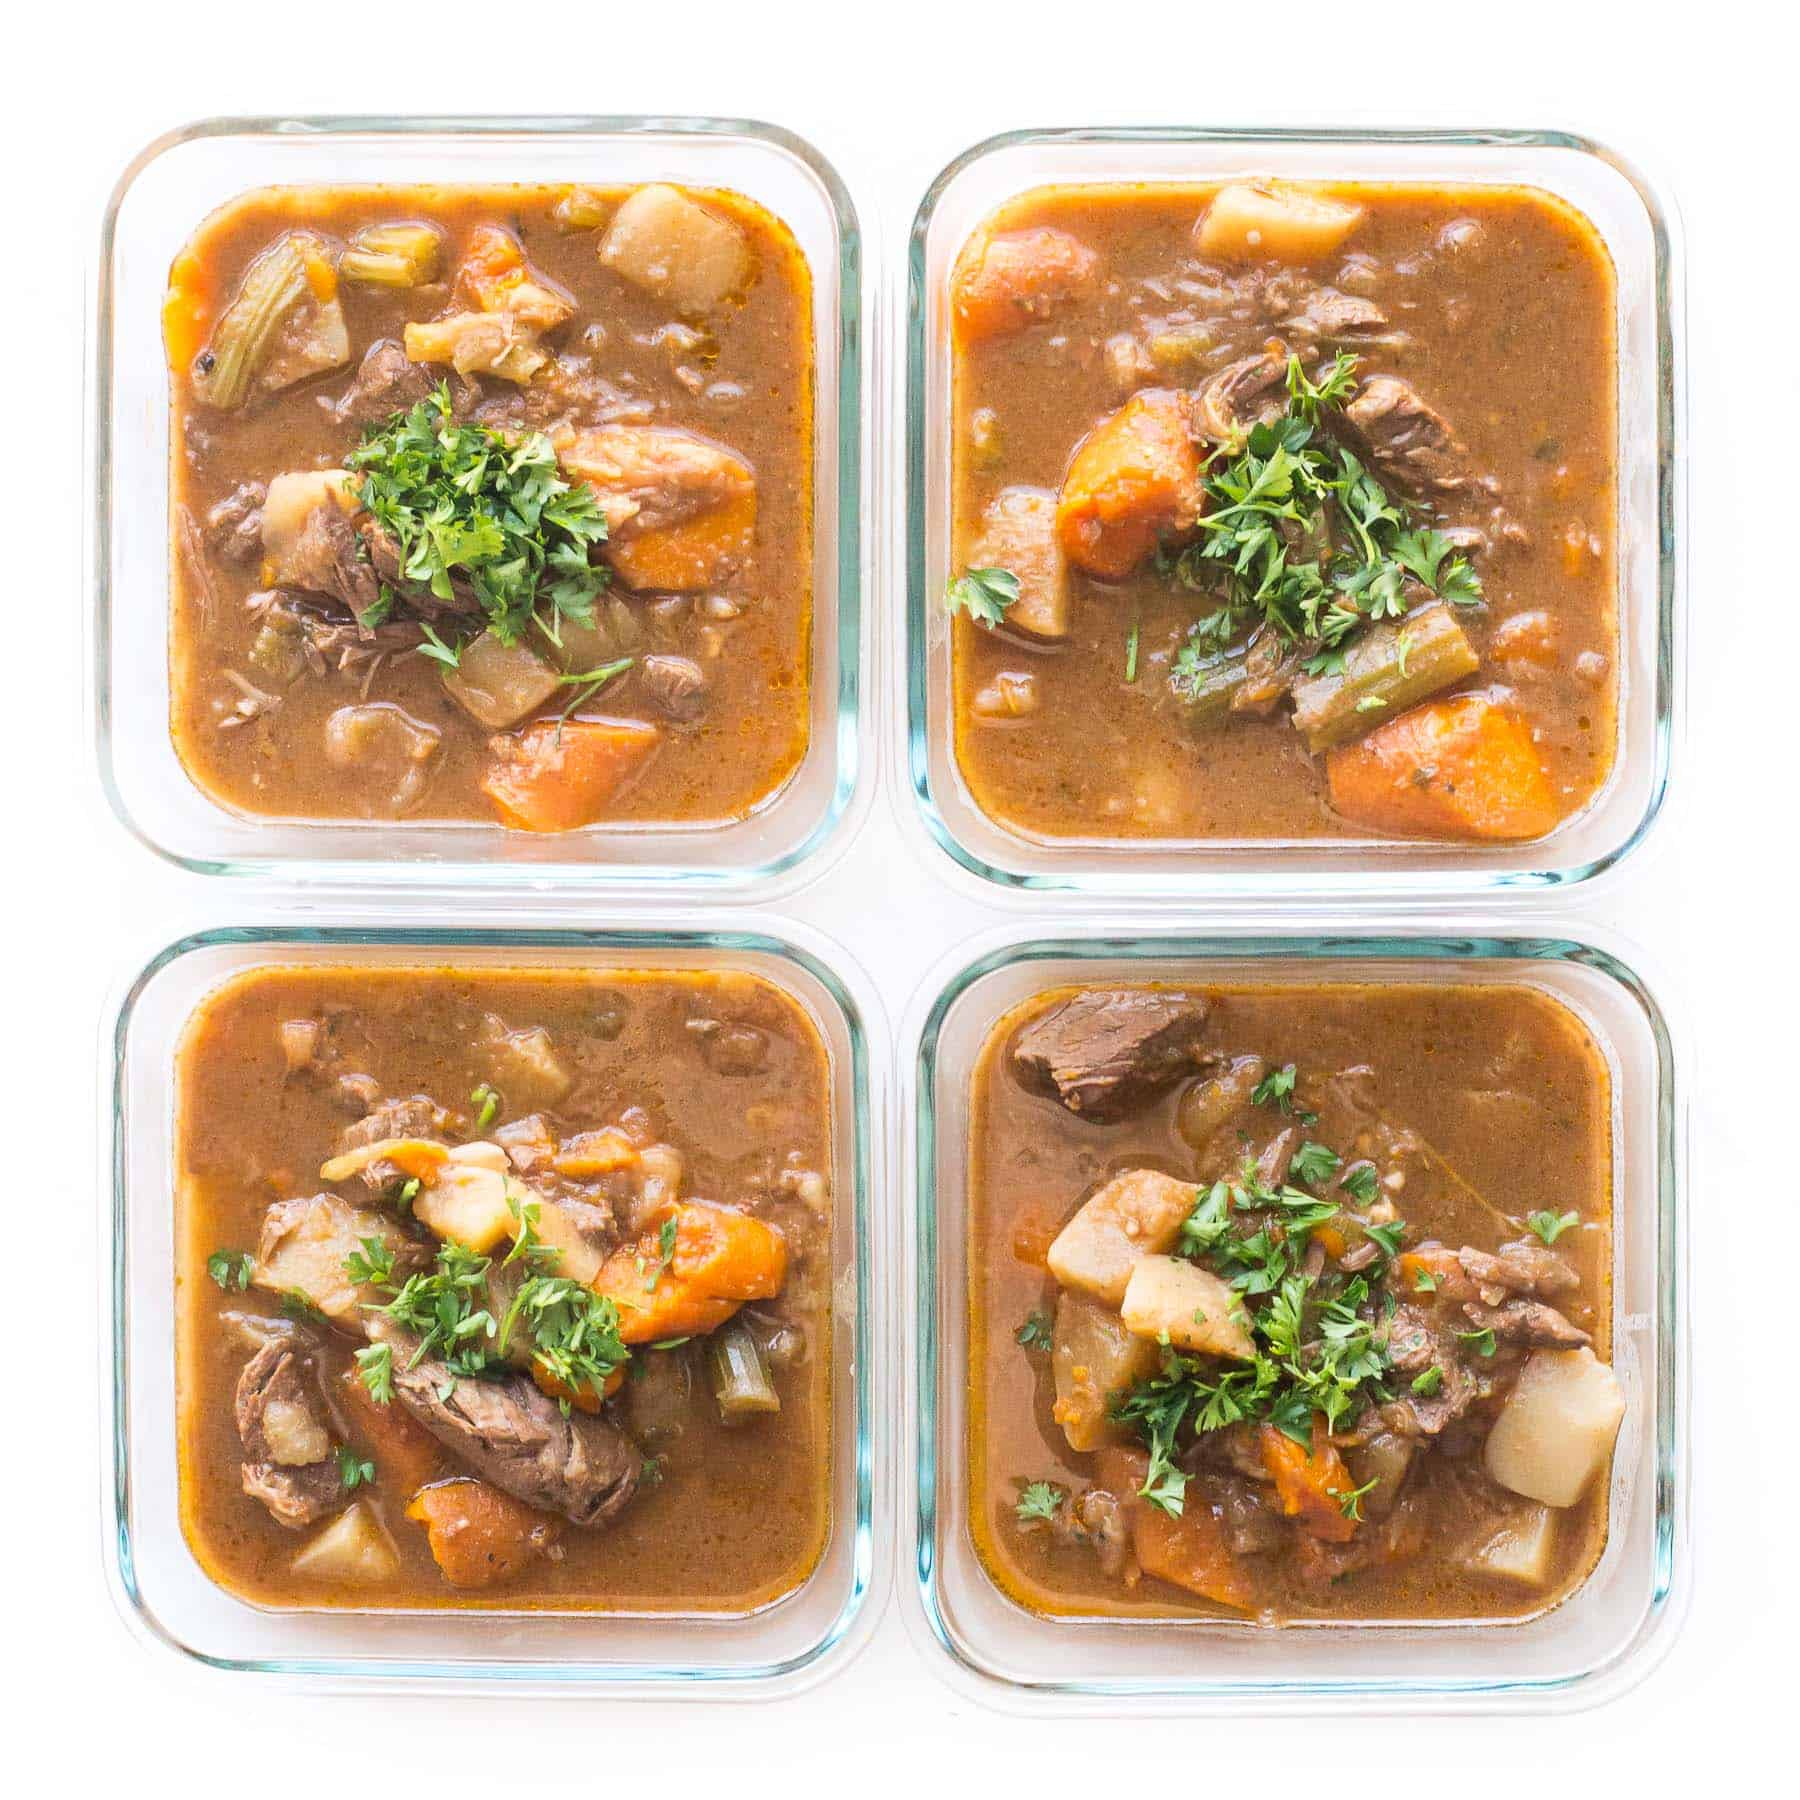 meal prep beef stew in meal prep containers l on a white background